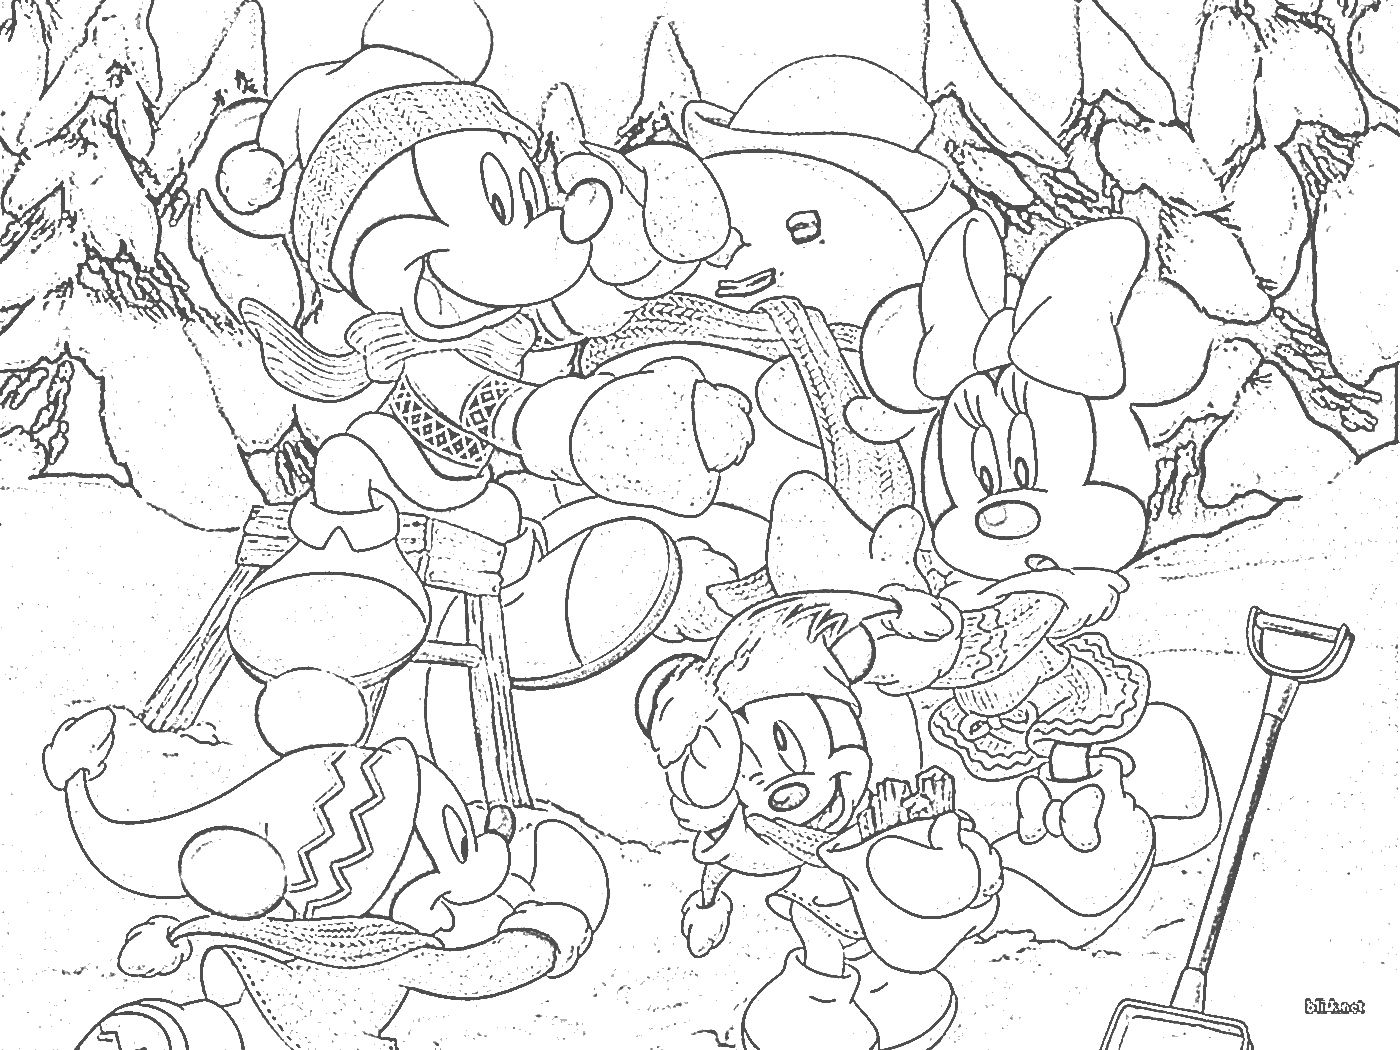 Coloring sheet for christmas - Disney Christmas Disney Christmas Tree Coloring Pages